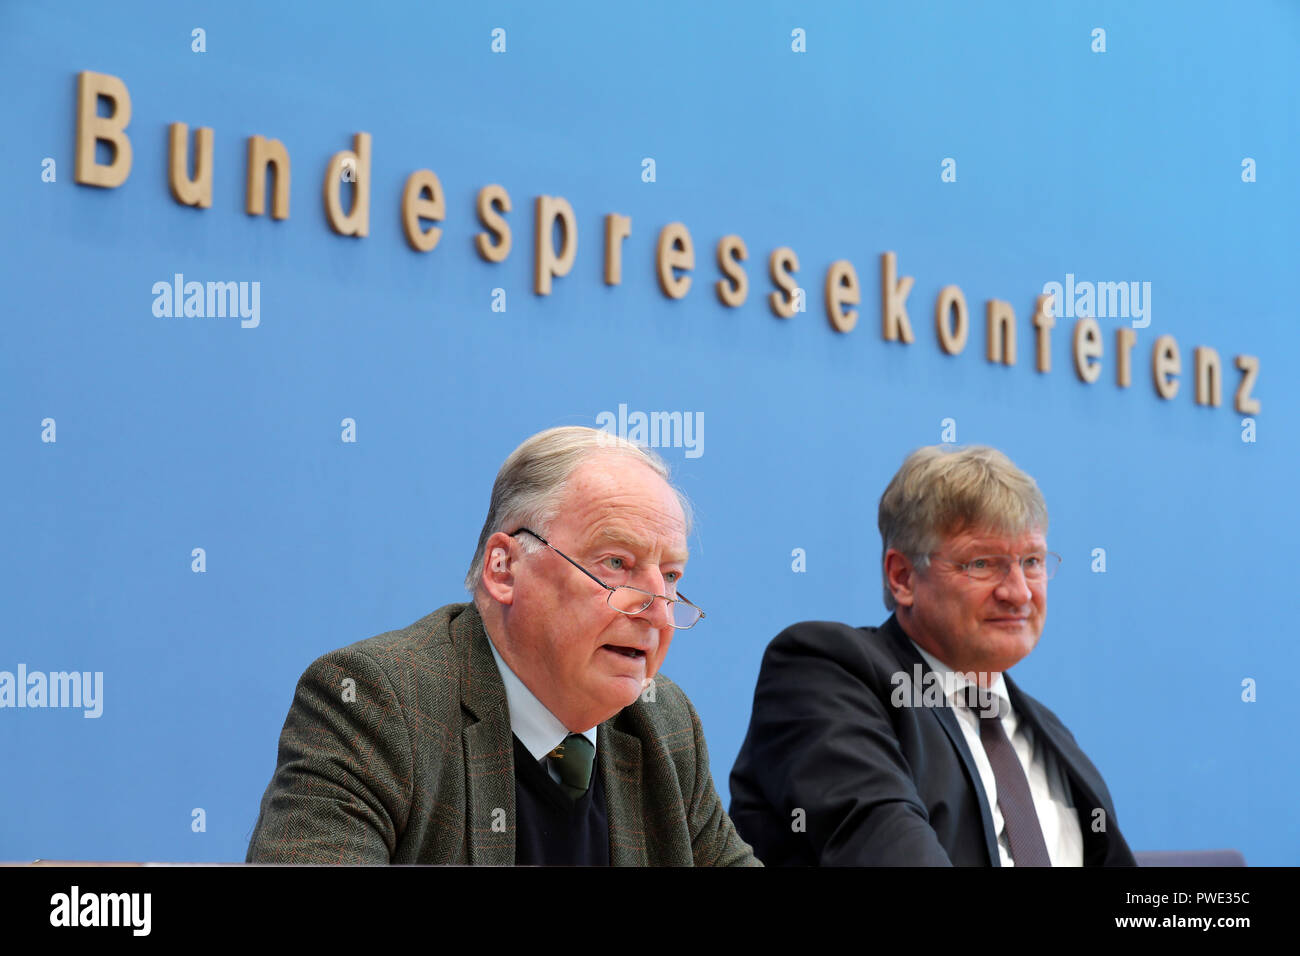 15 October 2018, Berlin: 15 October 2018, Germany, Berlin: Joerg Meuthen (R) and Alexander Gauland, party chairman of the AfD, take their places on the podium of the federal press conference and then answer questions about the results of the state elections in Bavaria. Photo: Jens Büttner/dpa-Zentralbild/dpa - Stock Image